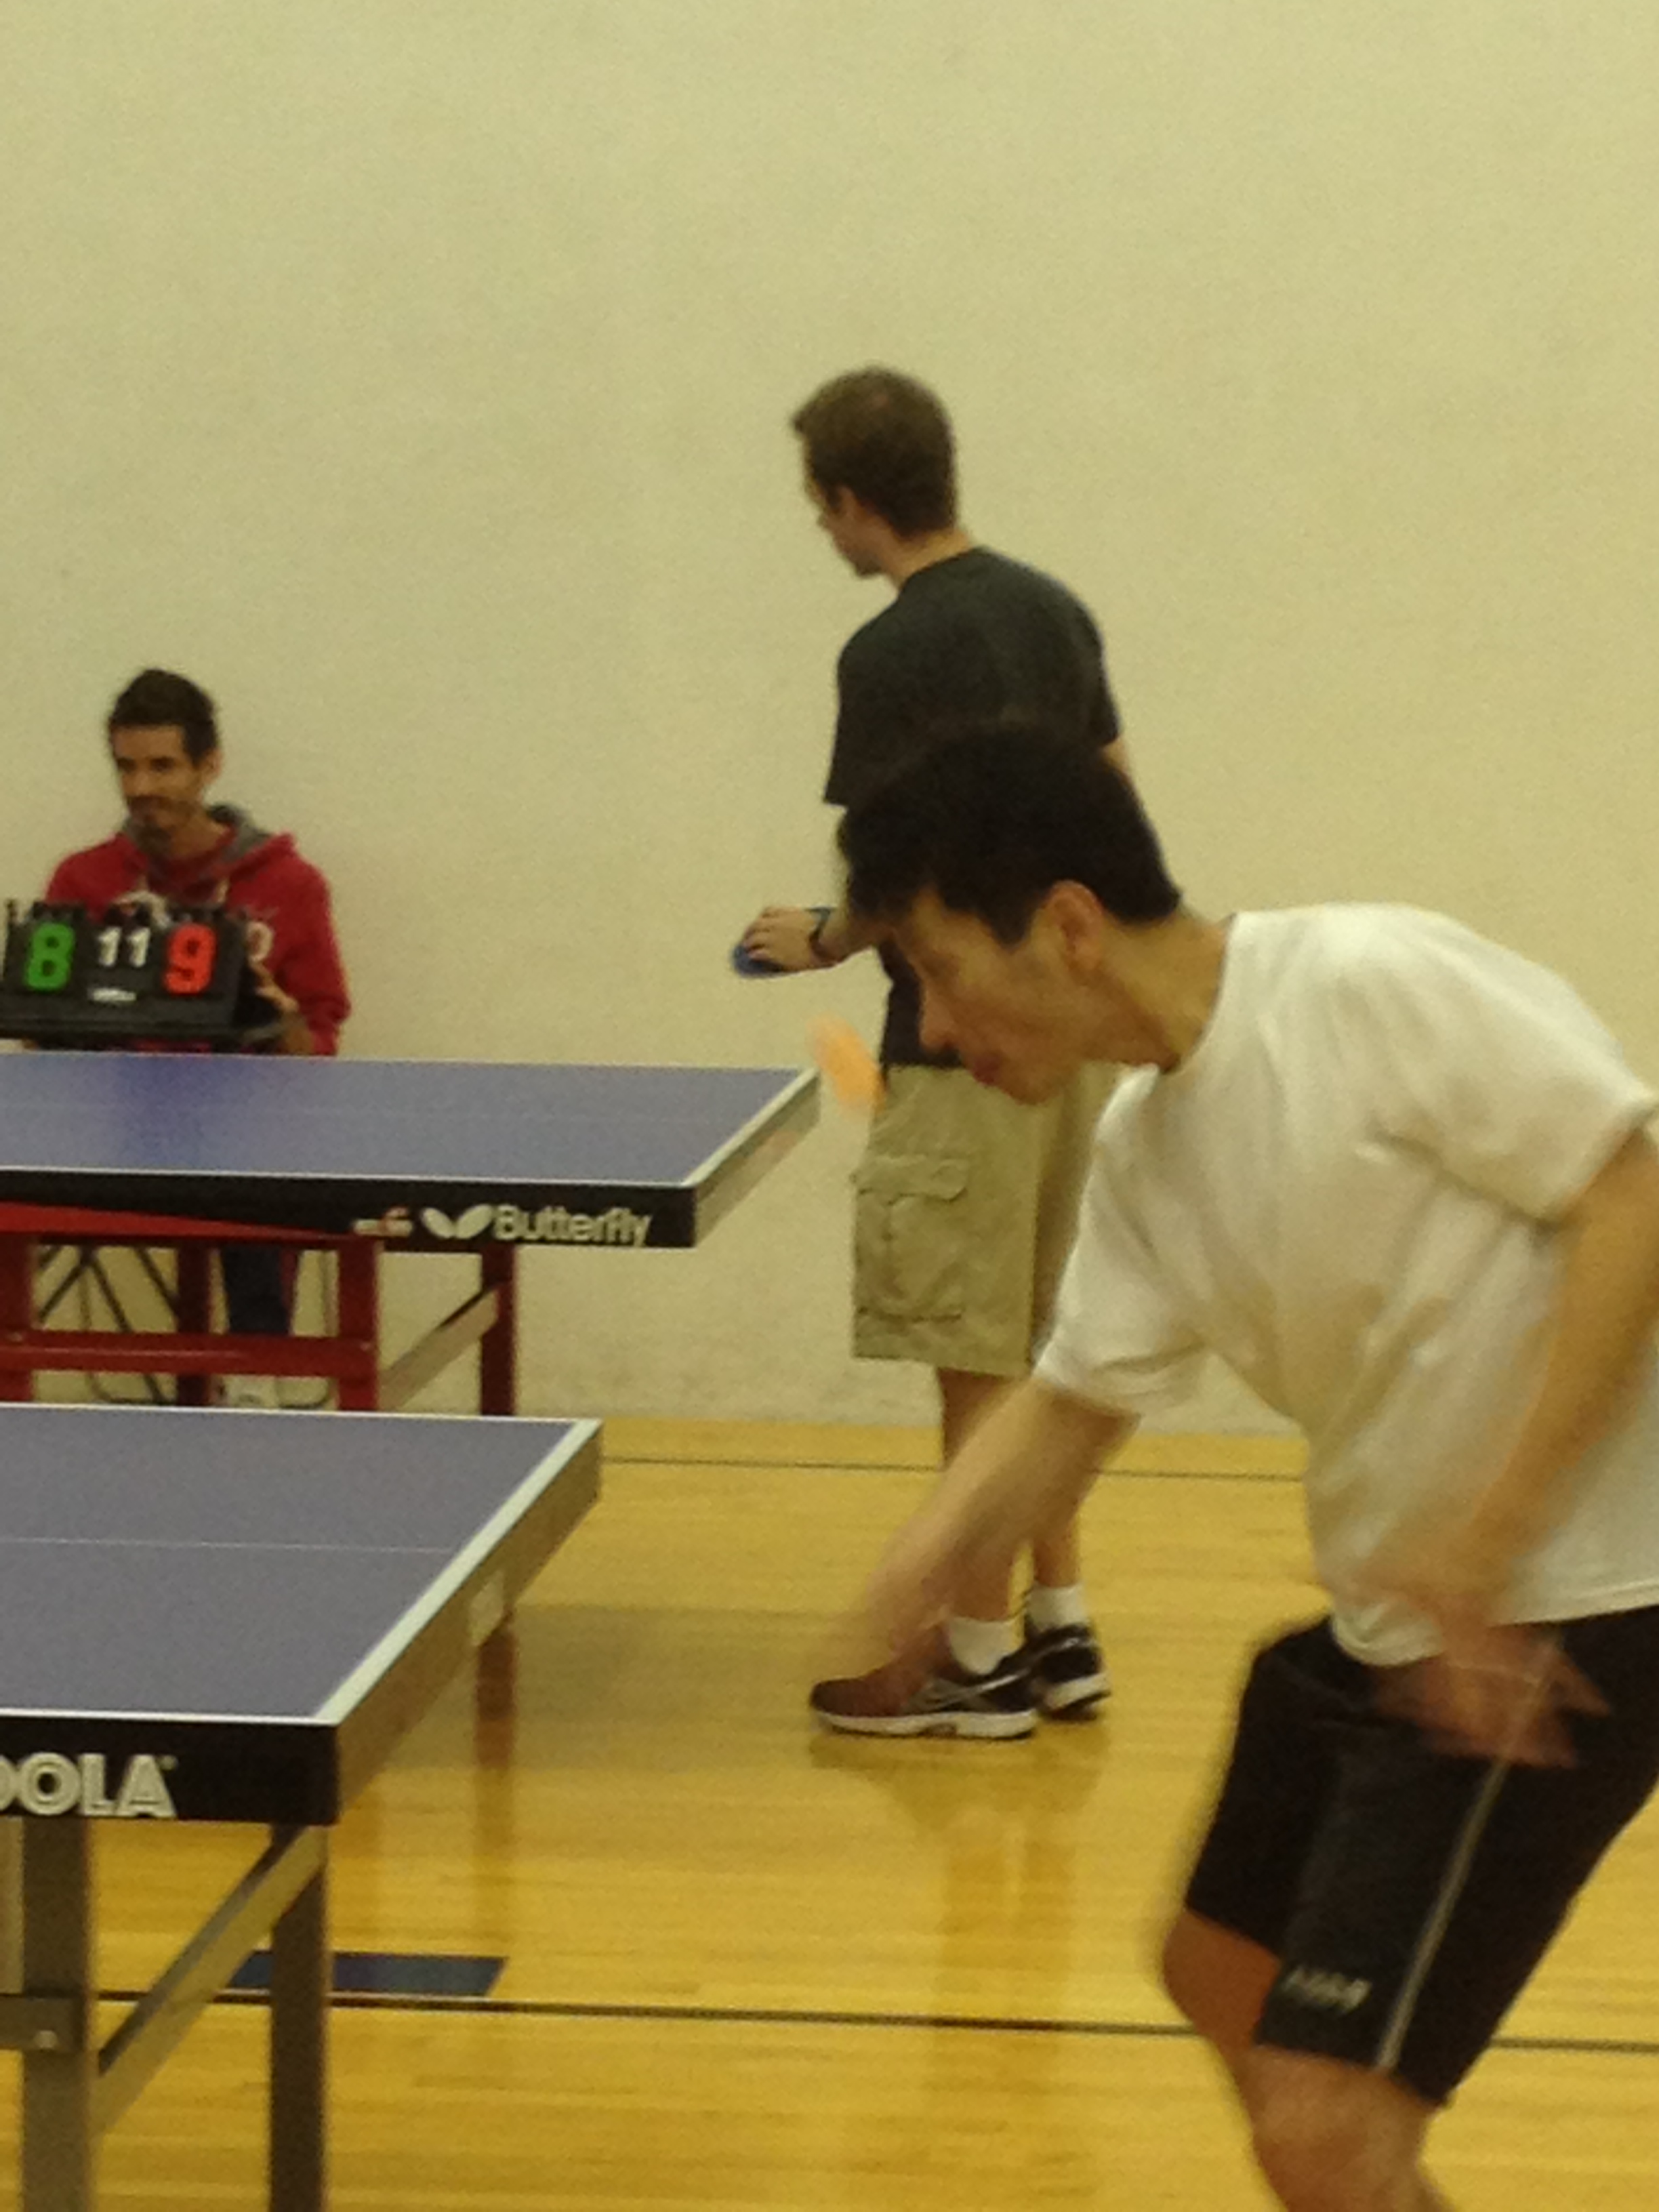 Newport beach equal challenge table tennis gallery for 10 table tennis rules